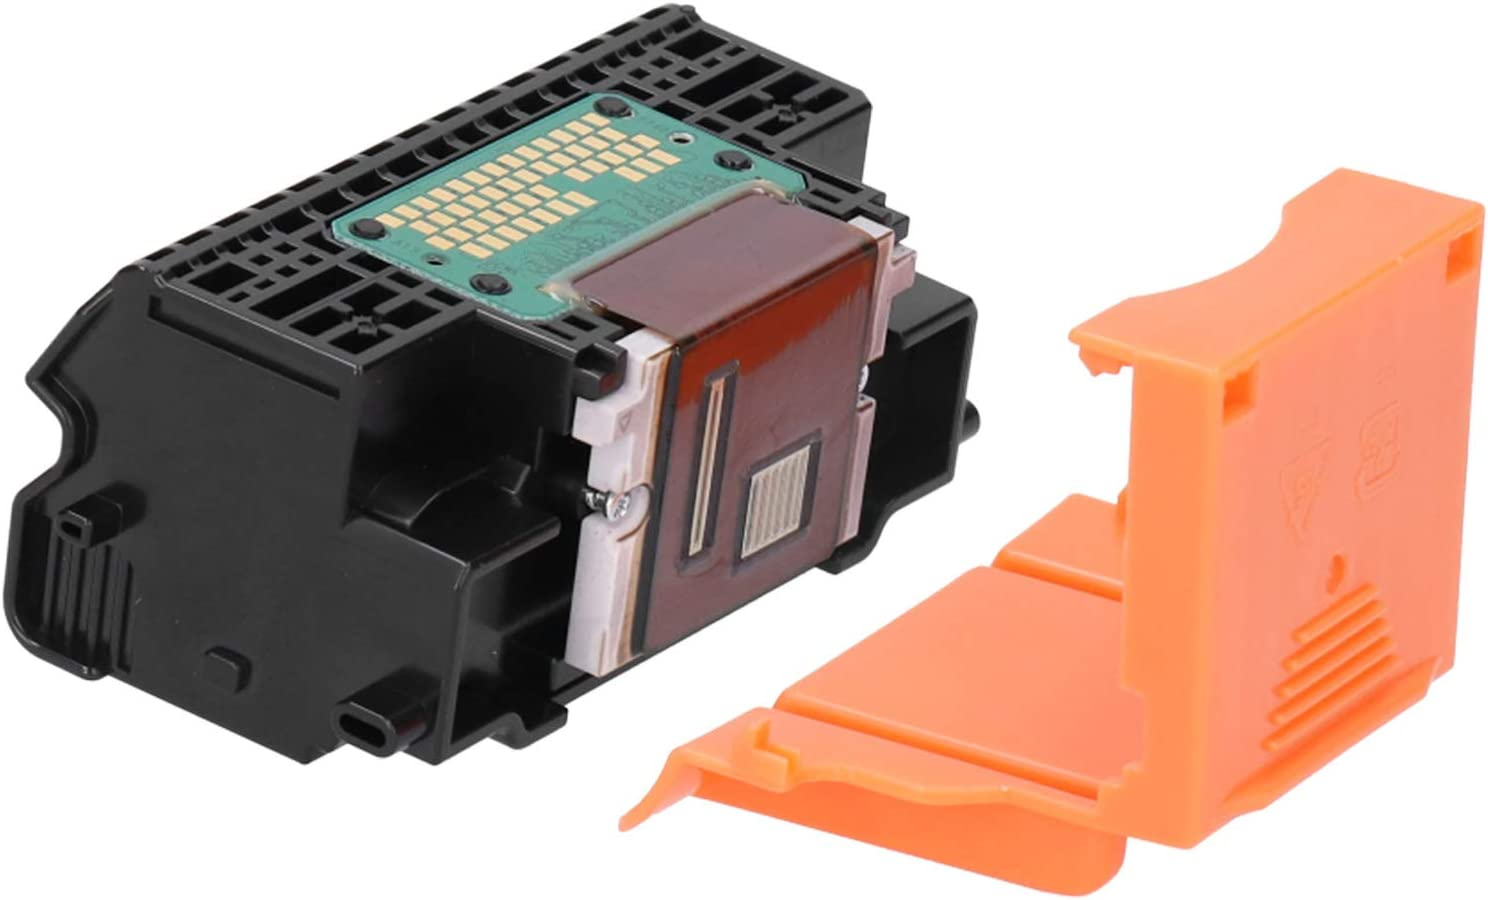 Replaceable Printer Head, Energy Saving Color Print Head, Portable Office for Computer Printers Scanners Parts